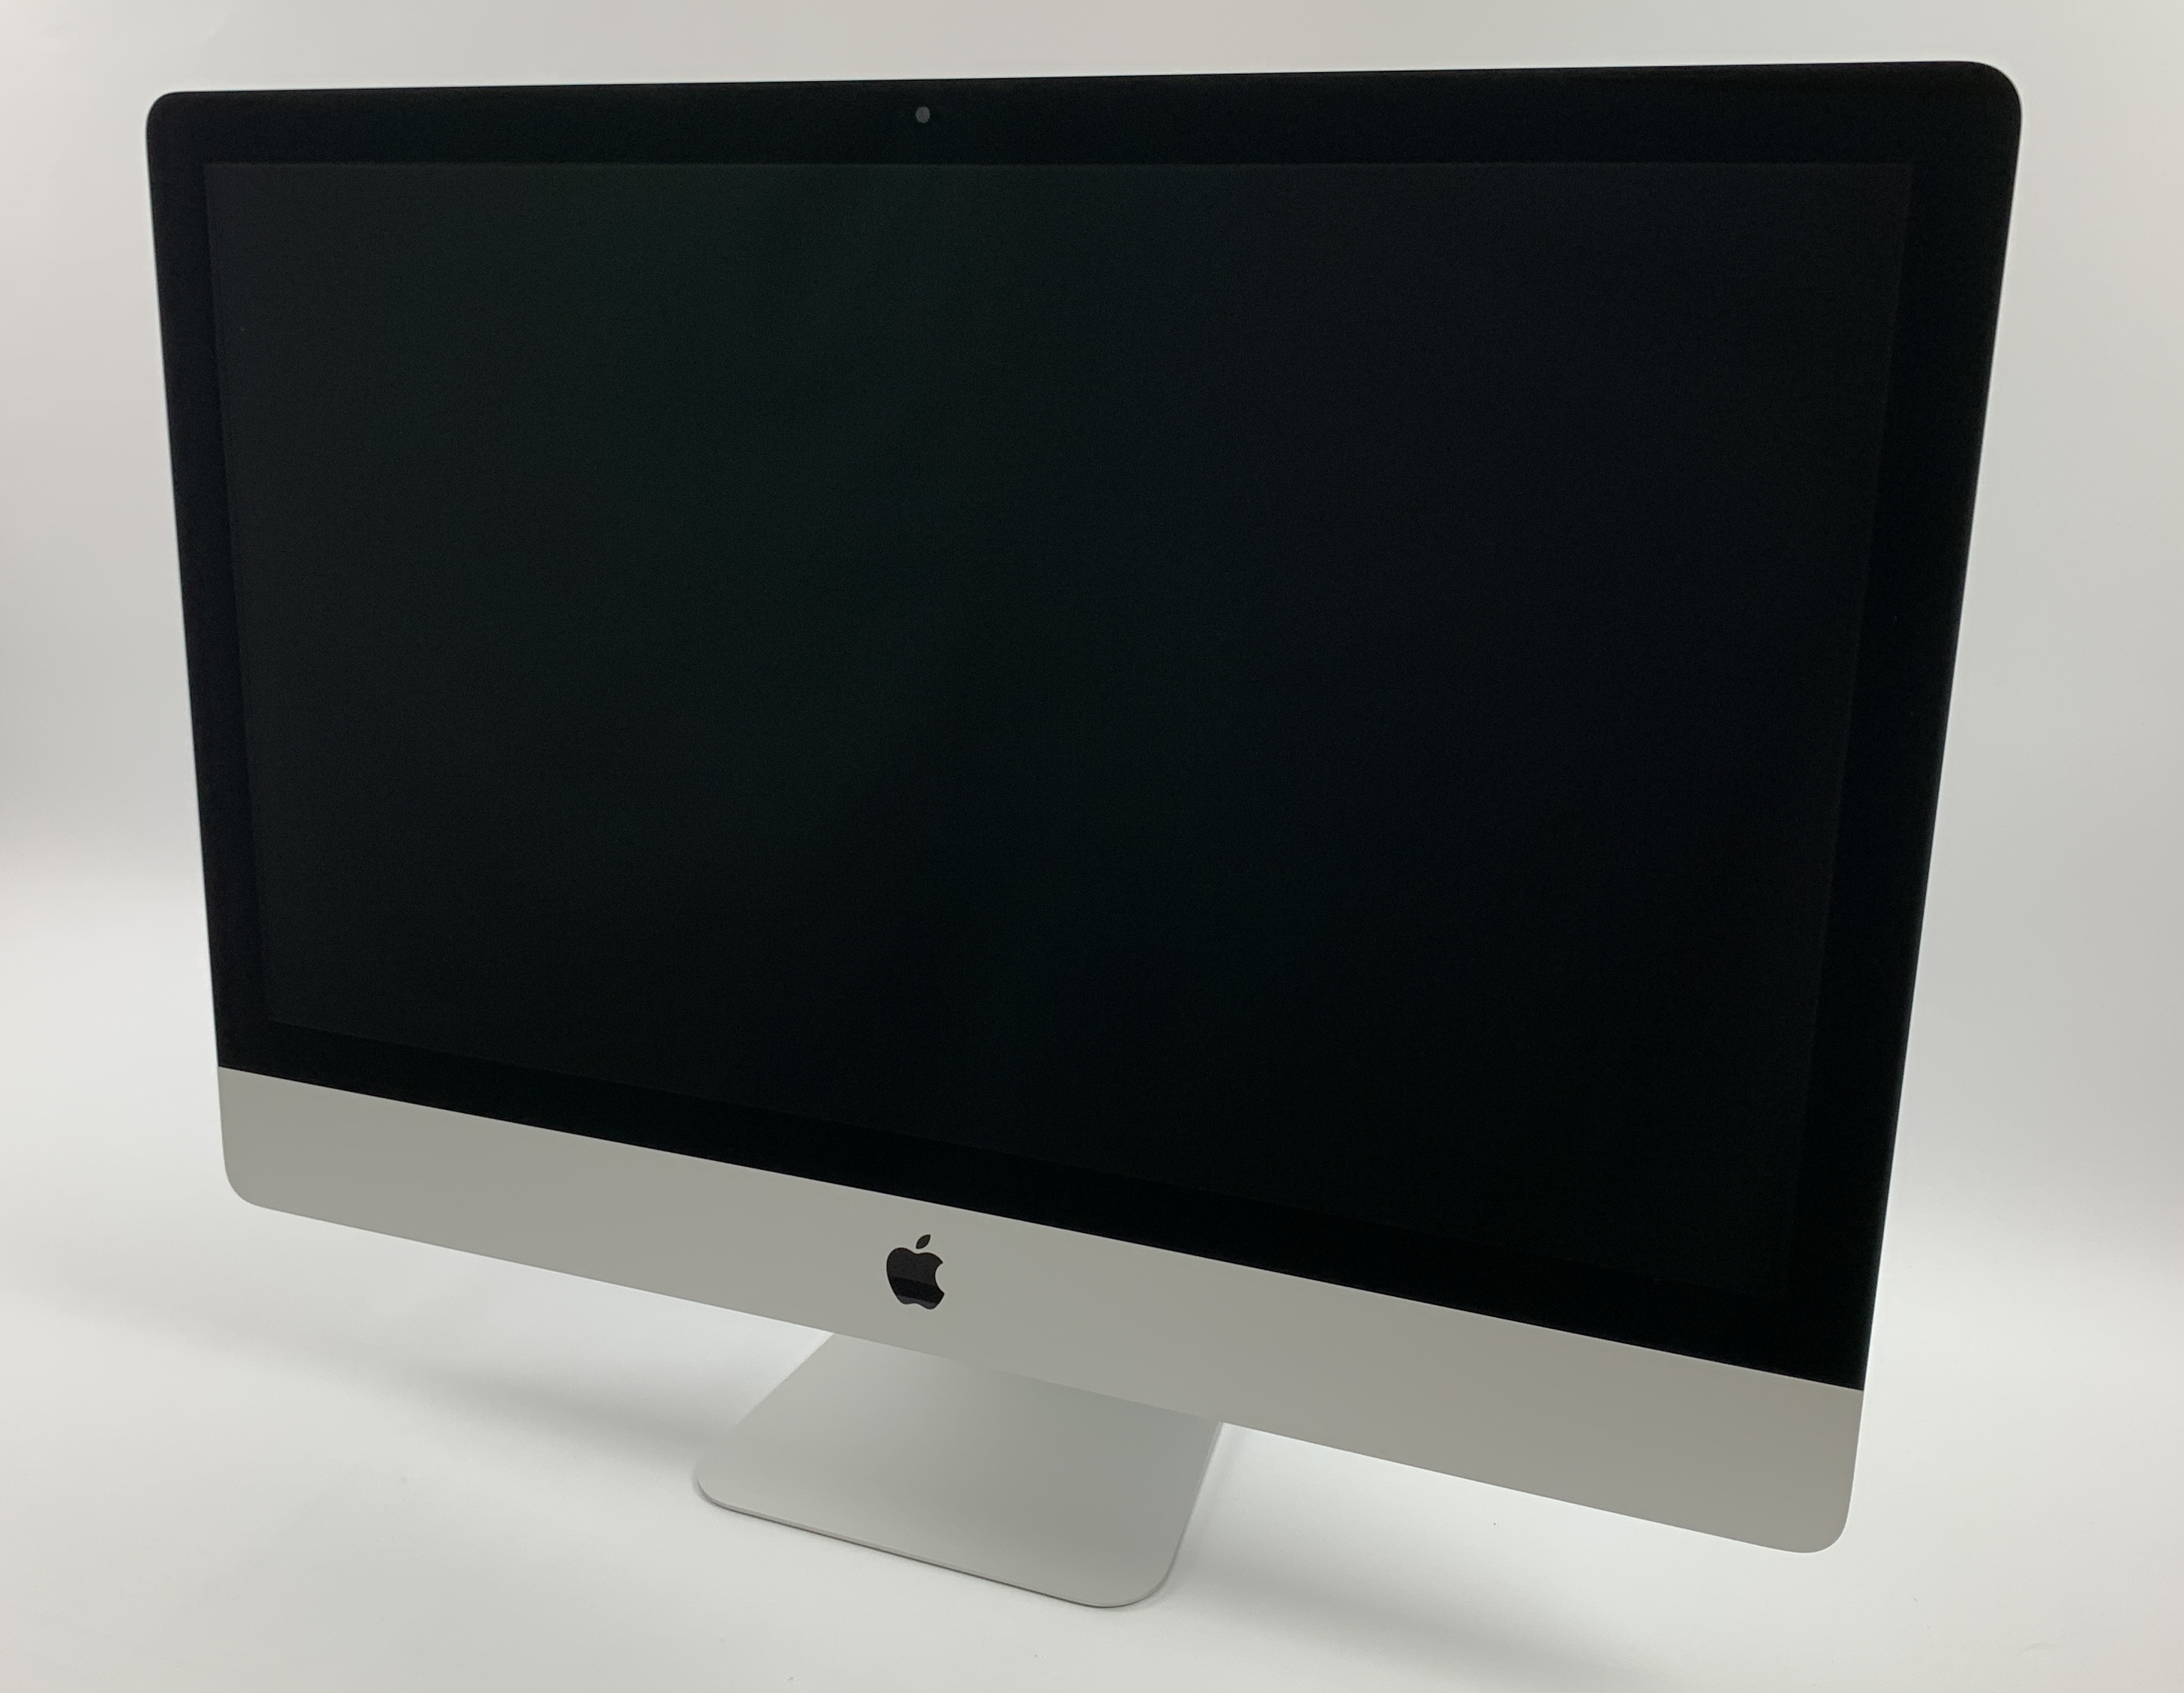 "iMac 27"" Retina 5K Early 2019 (Intel 6-Core i5 3.7 GHz 16 GB RAM 512 GB SSD), Intel 6-Core i5 3.7 GHz, 16 GB RAM, 512 GB SSD, bild 1"